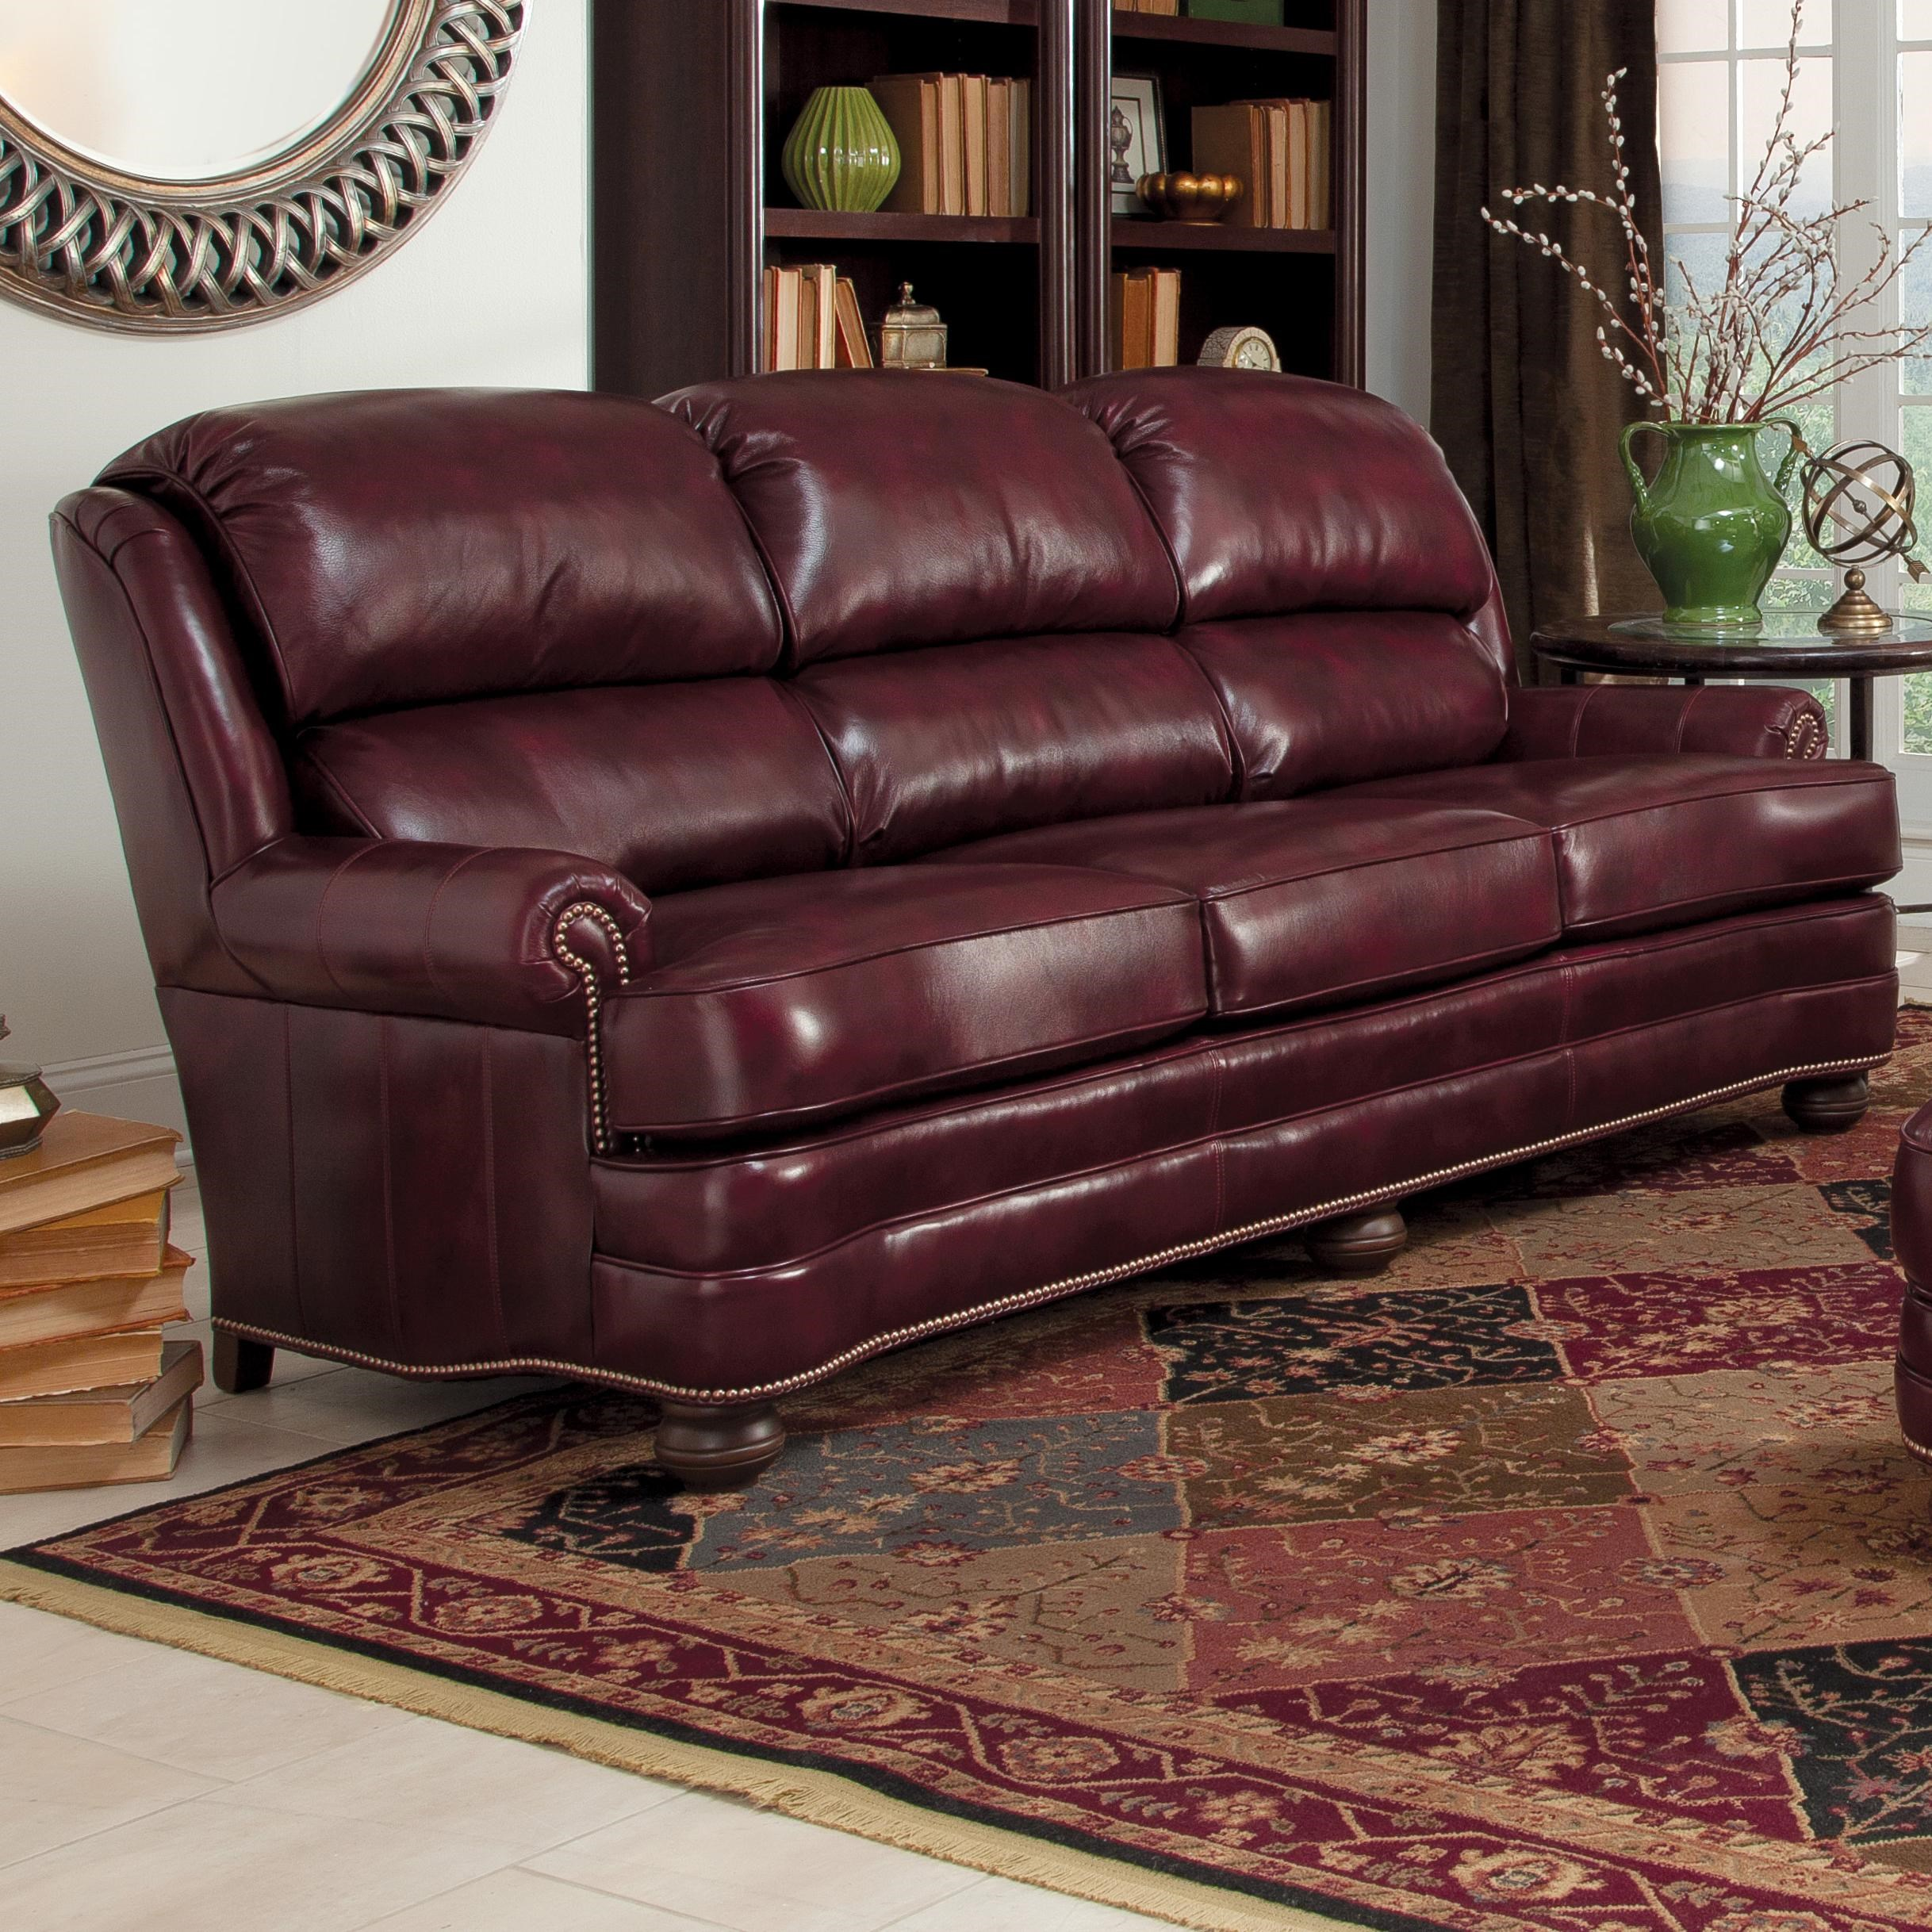 living room furniture leather and upholstery modern lighting fixtures smith brothers 311 311l10 upholstered stationary sofa dunk bright sofas